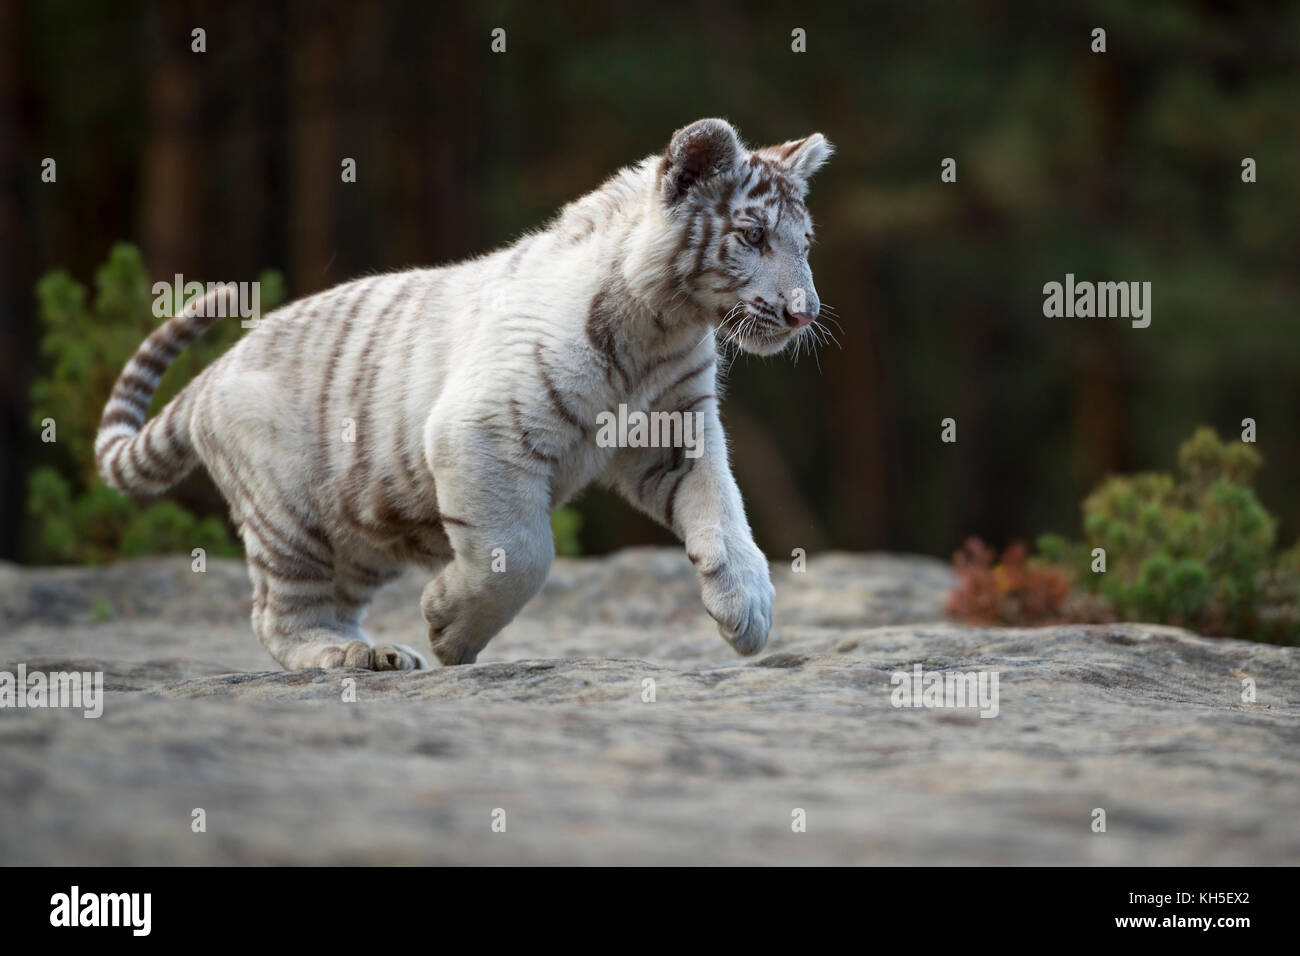 Bengal Tiger ( Panthera tigris ), white, young animal, adolescent, running, jumping over some rocks along the edge - Stock Image